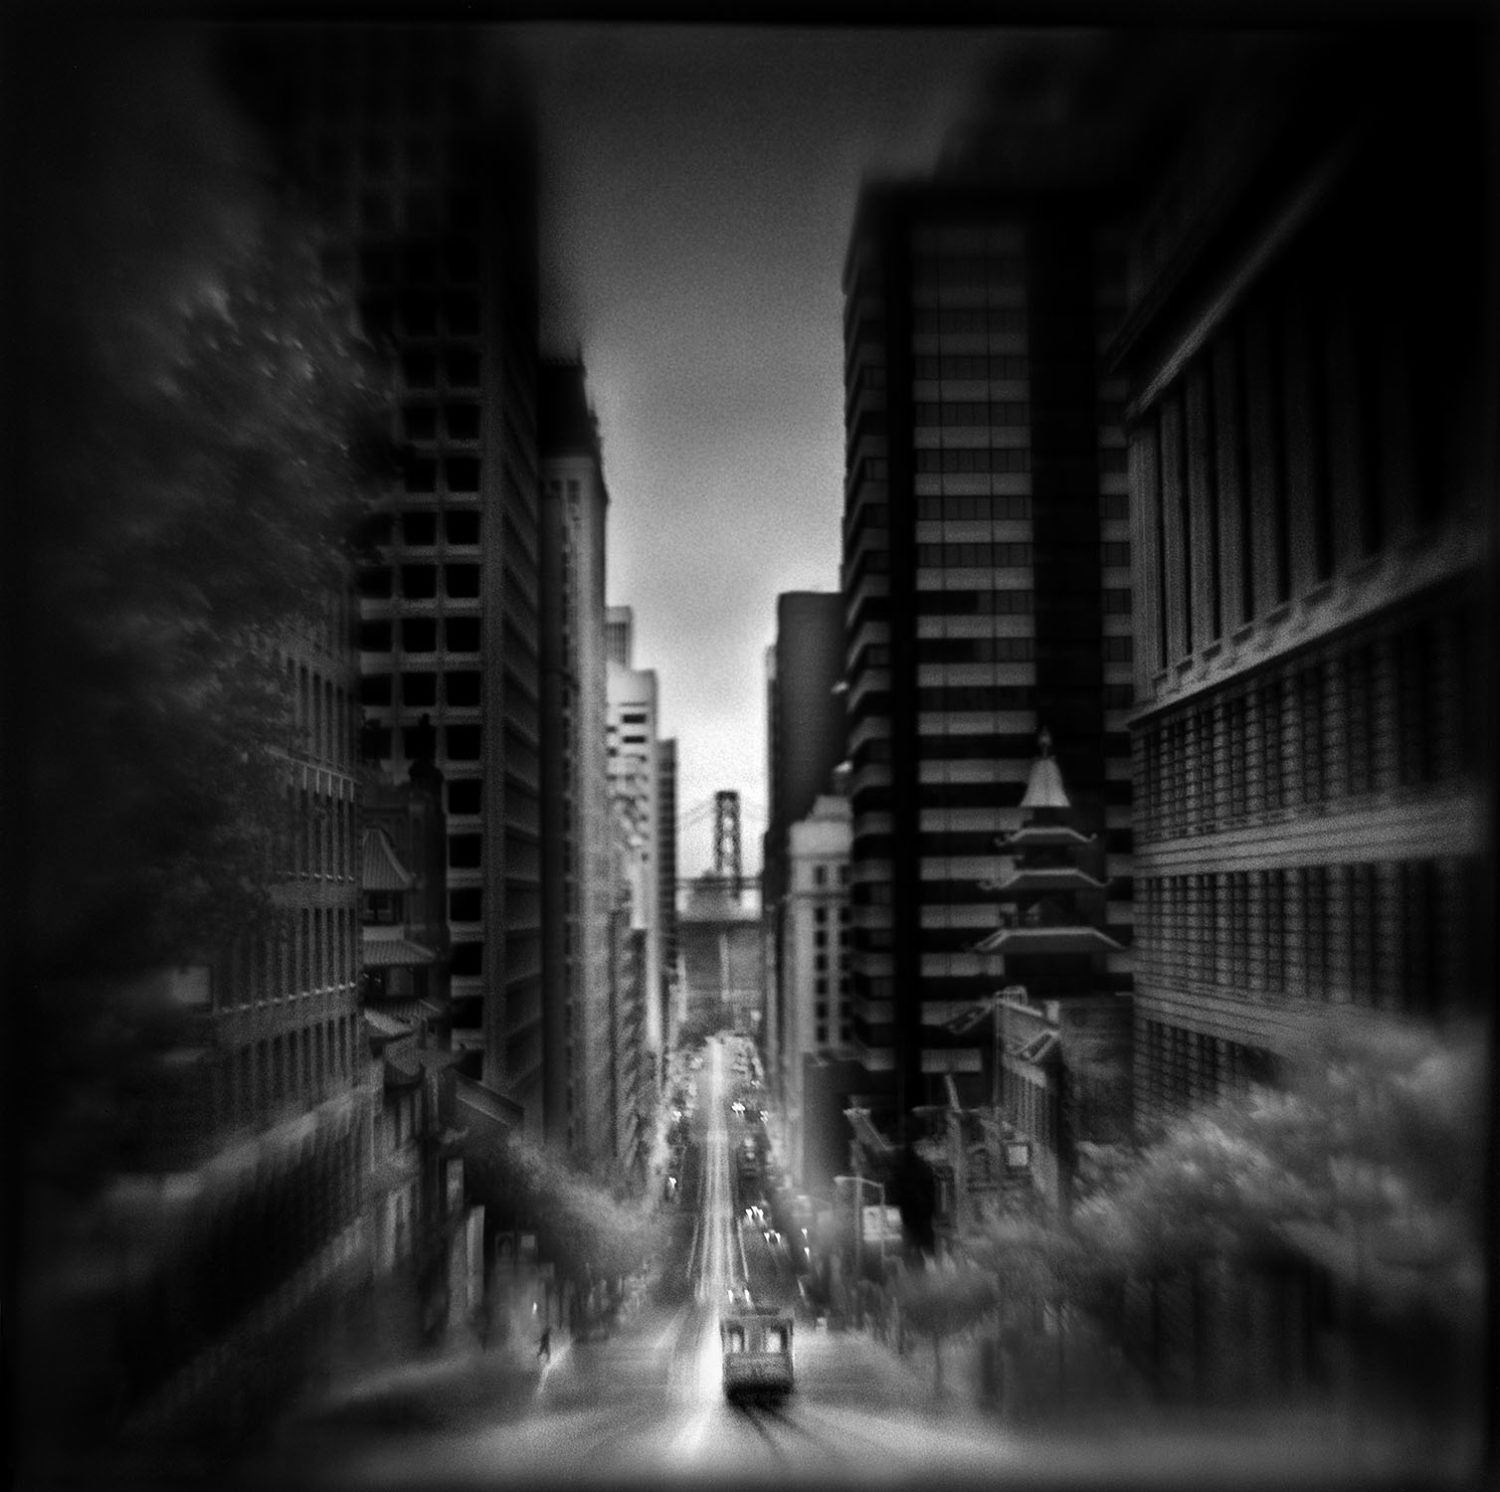 Contemporary Fine Art Photography:  Discovering Your Voice with Susan Burnstine (Online Learning)